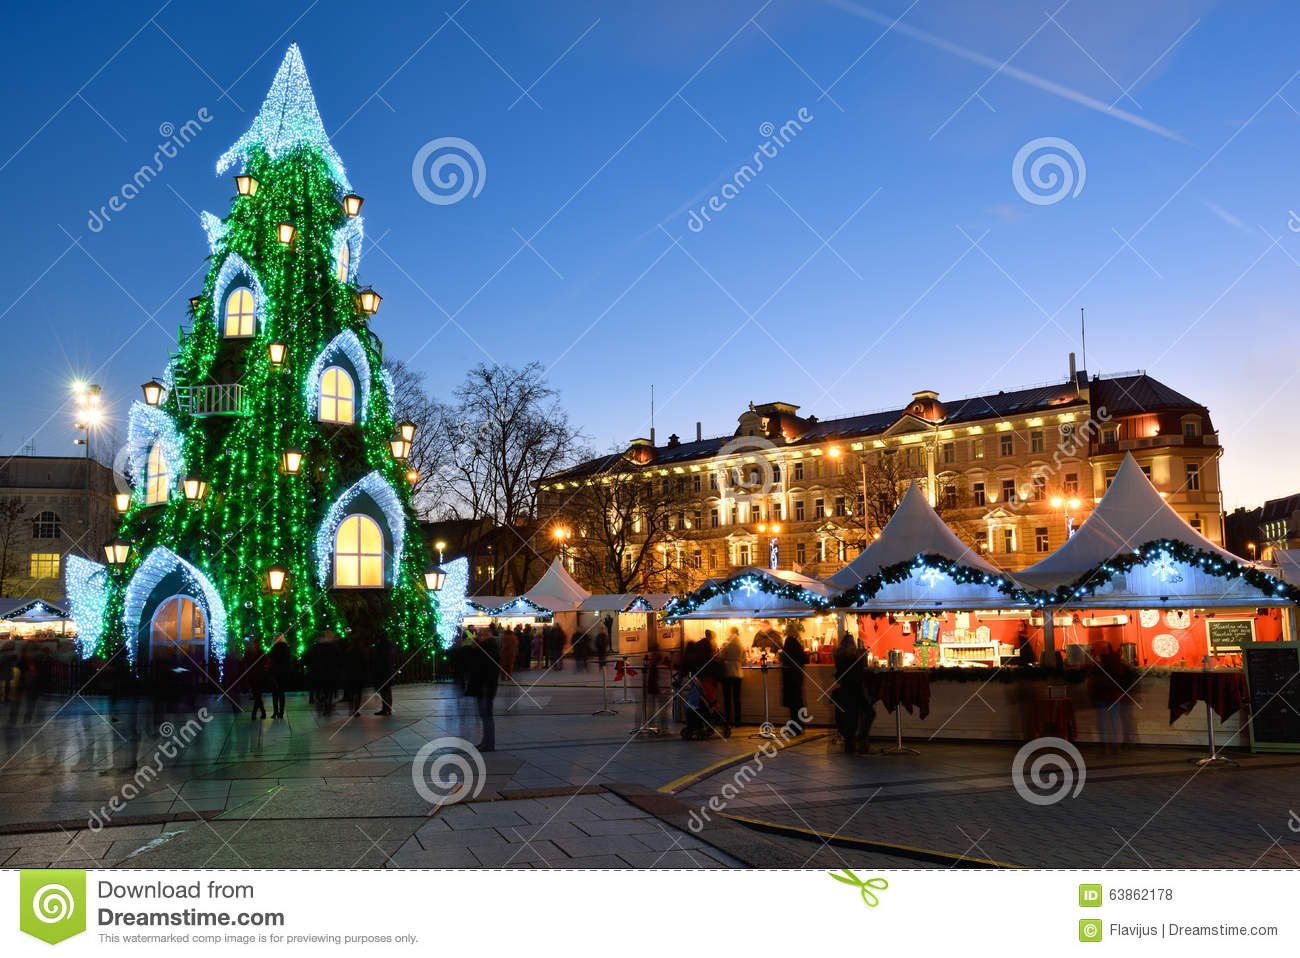 Night View Of The Christmas Tree In Vilnius Editorial Stock Photo - Image of beautiful ...